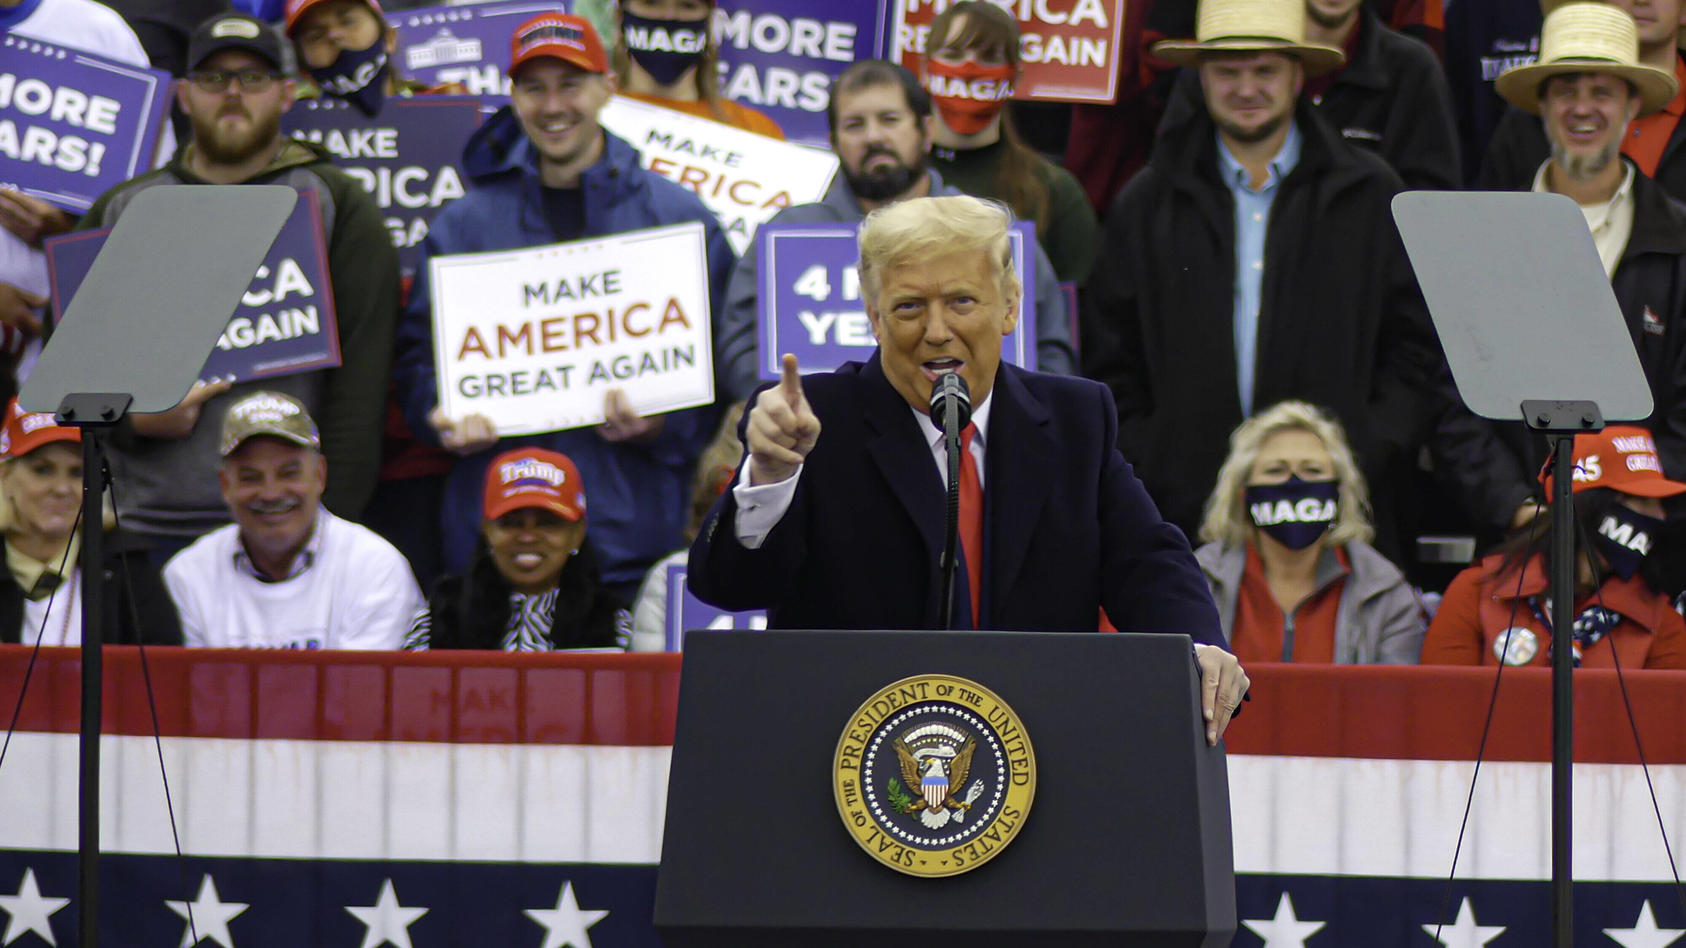 US President Trump Returns to Energize his Electoral Base in Pennsylvania. US President Trump Returns to Energize his E